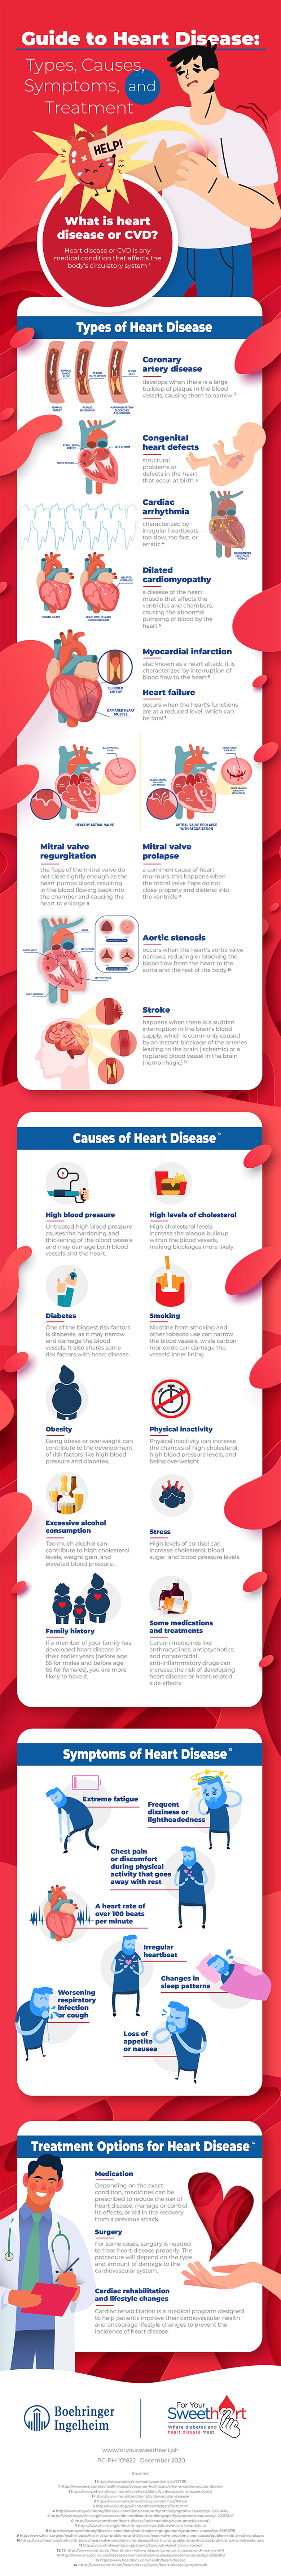 Infographic Guide to Heart Disease